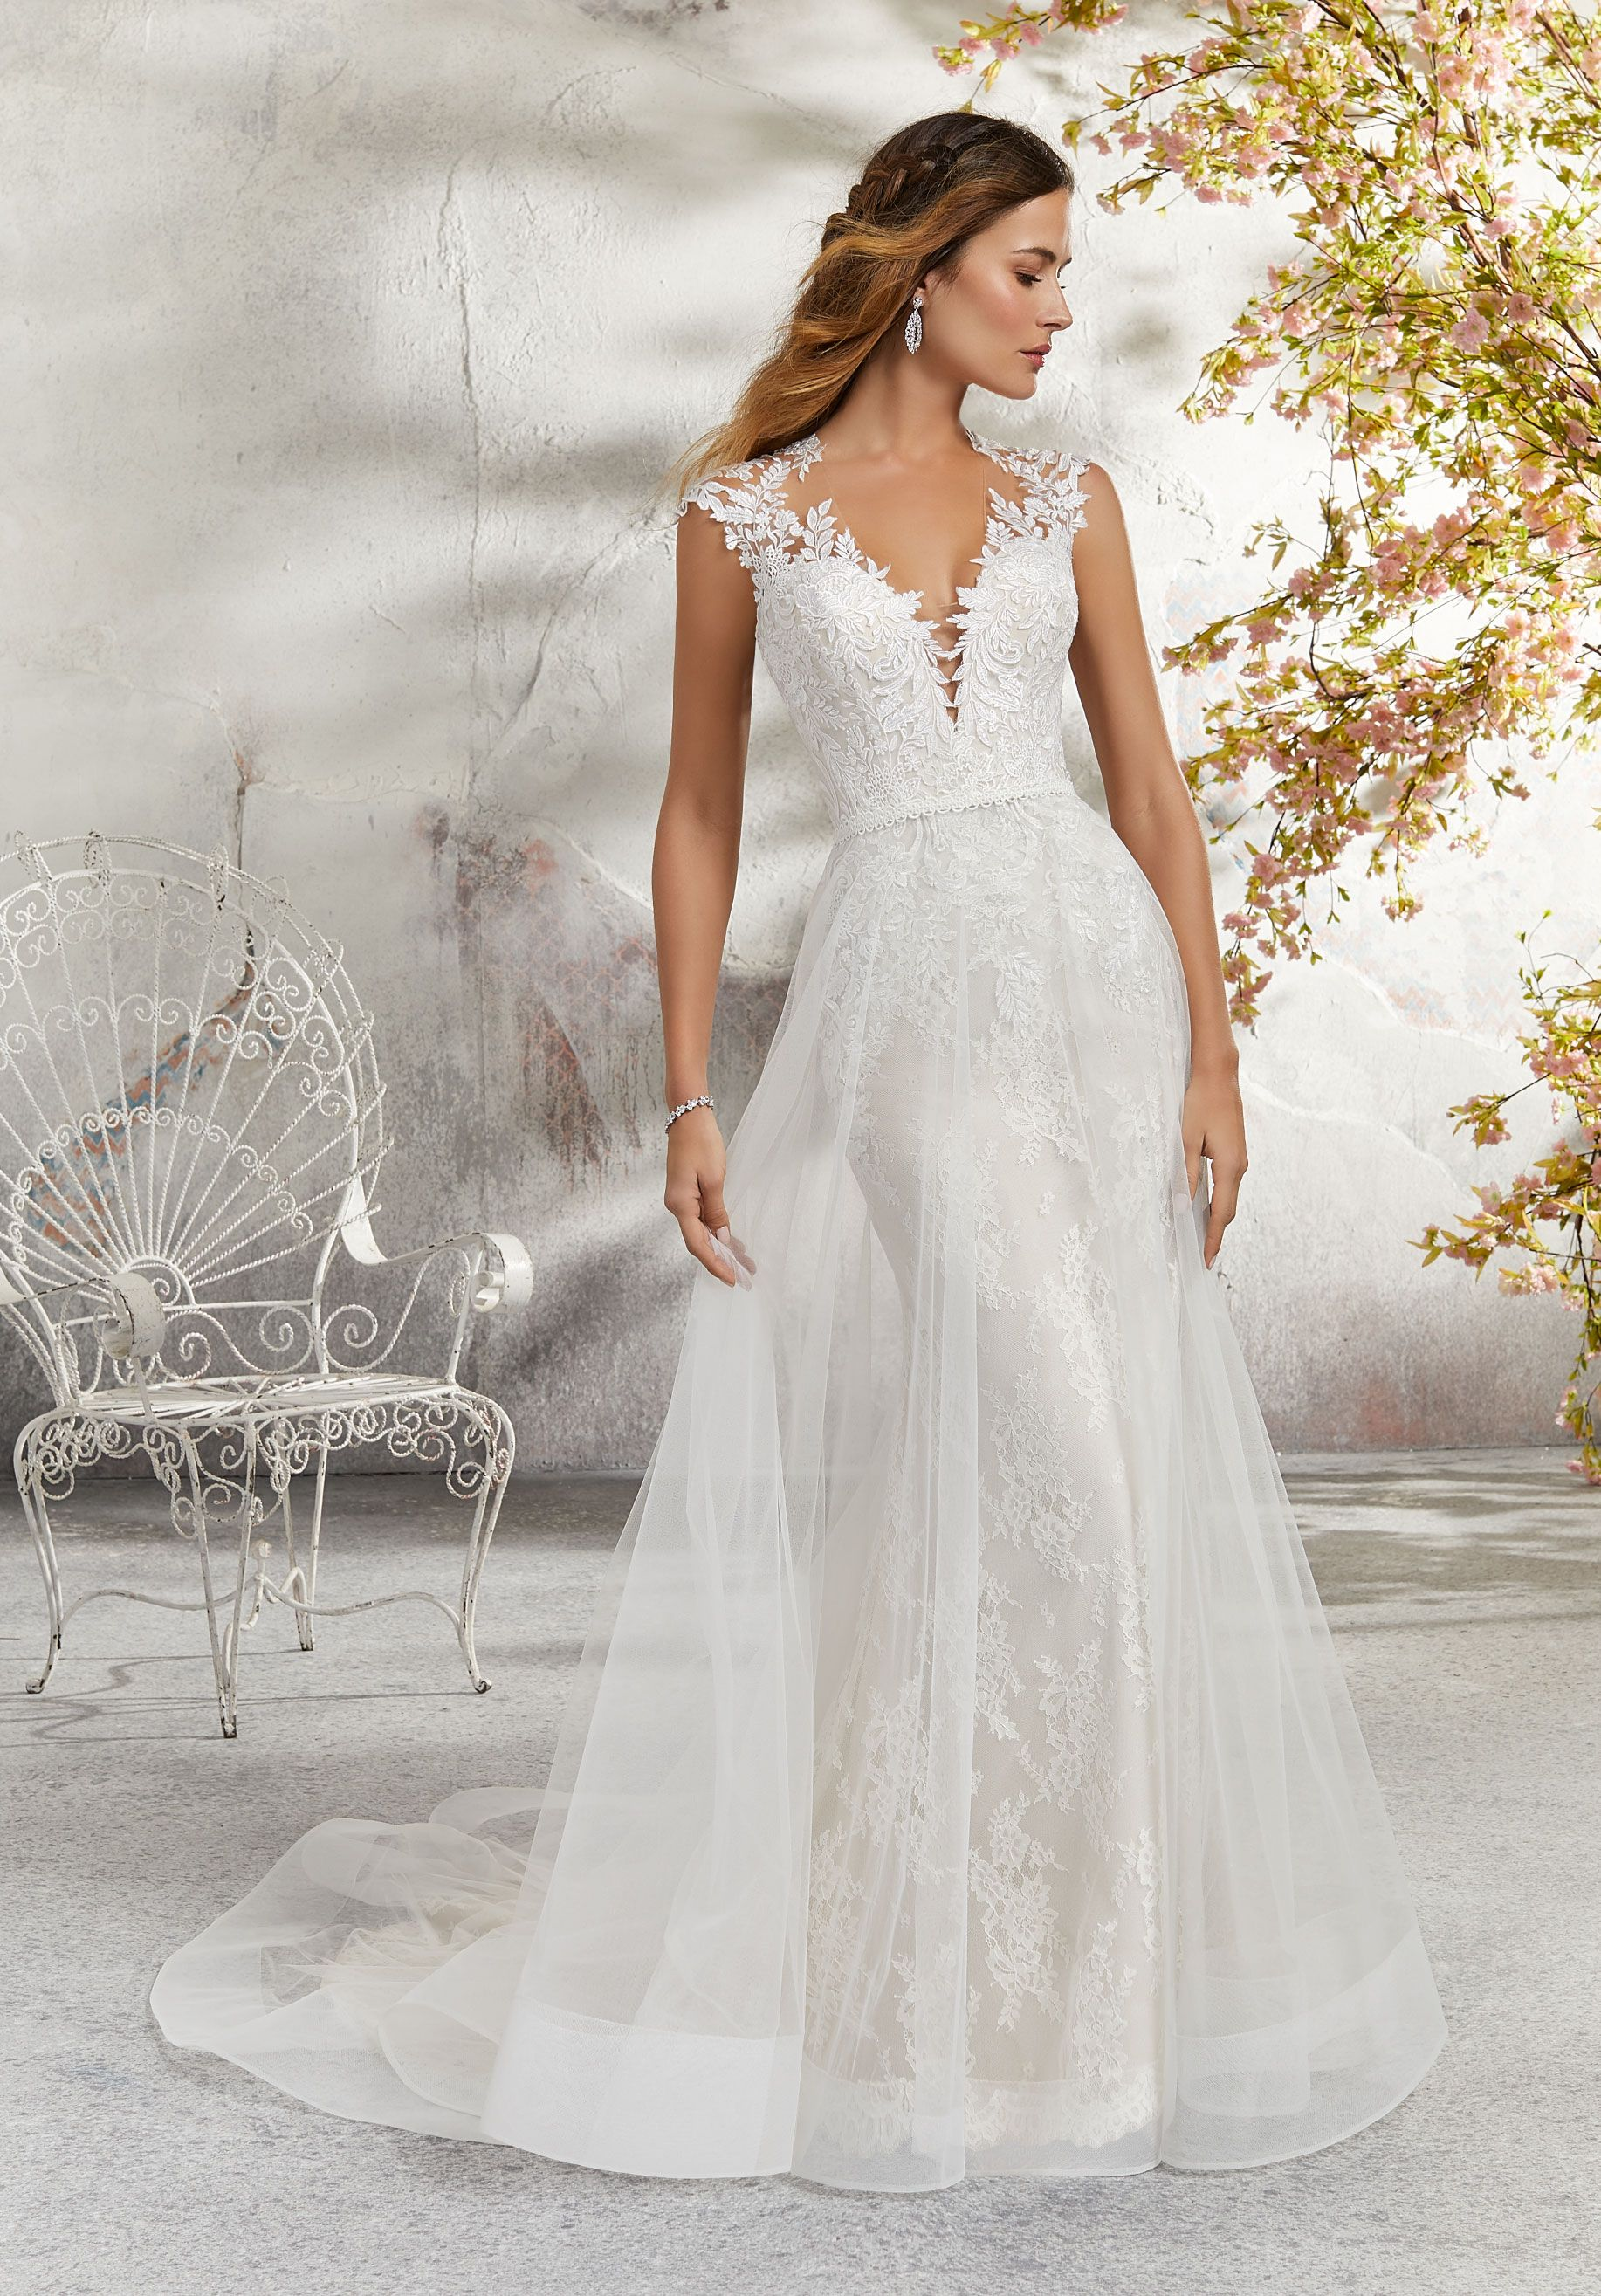 Fantasy Bridal Contemporary And Modest Gowns For Utah Brides Salt Lake City County 131097